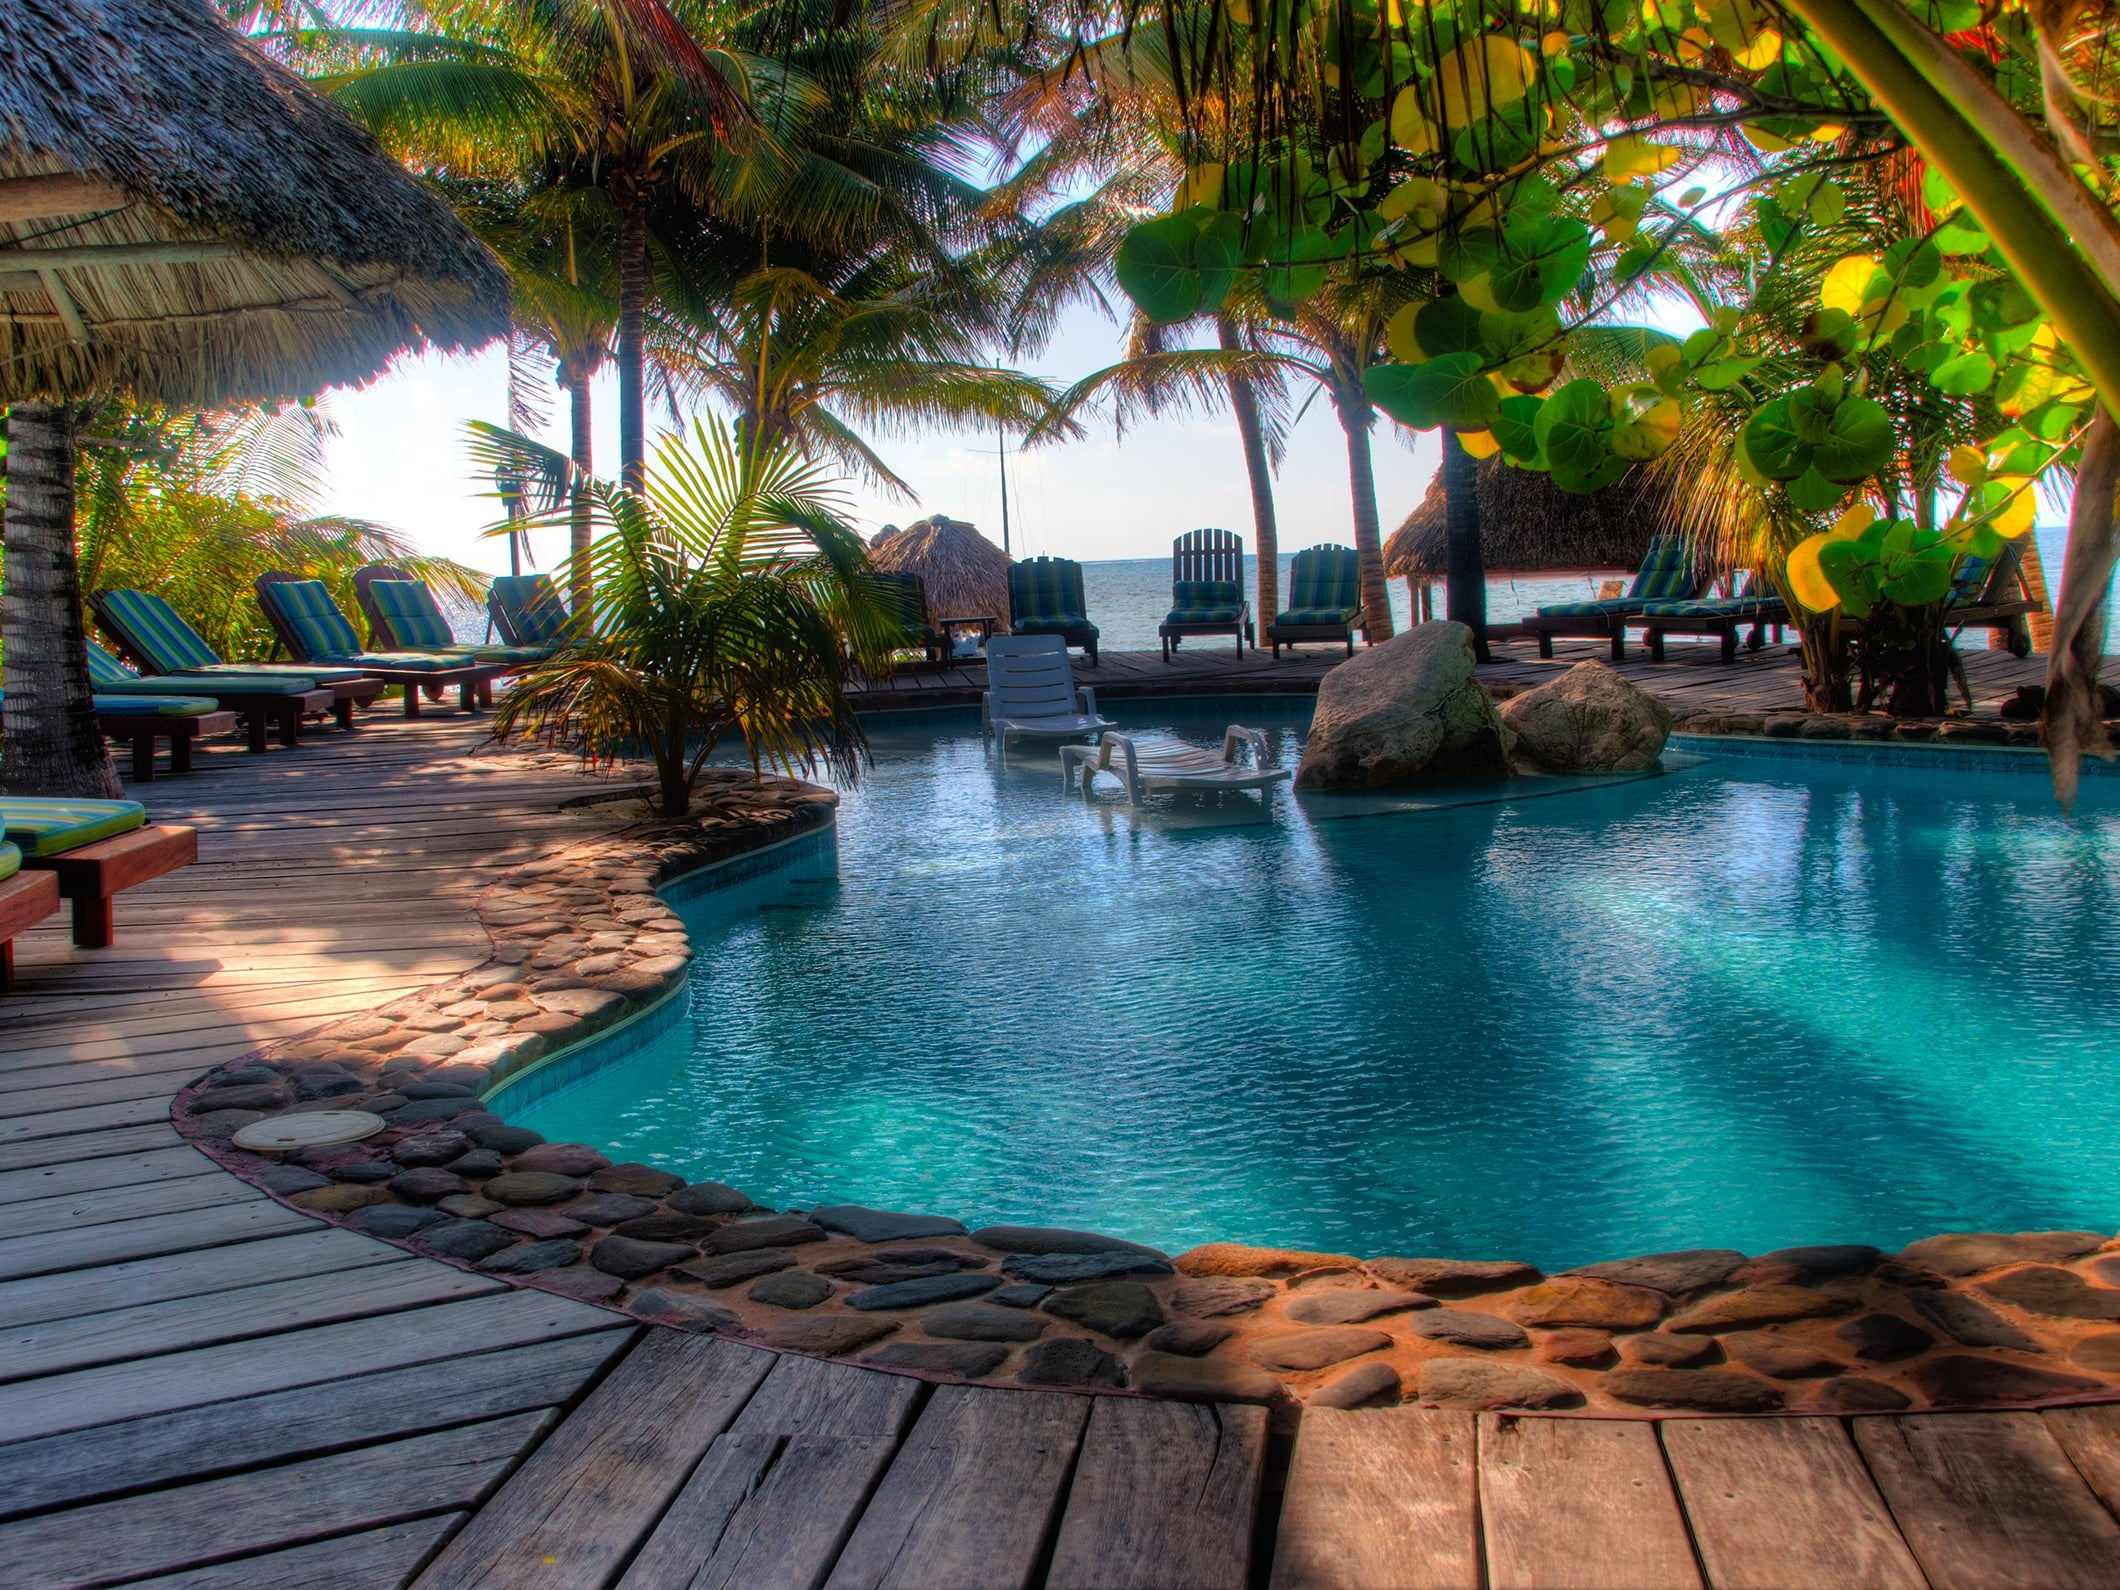 The secluded pool area at Xanadu Island Resort on Ambergris Caye